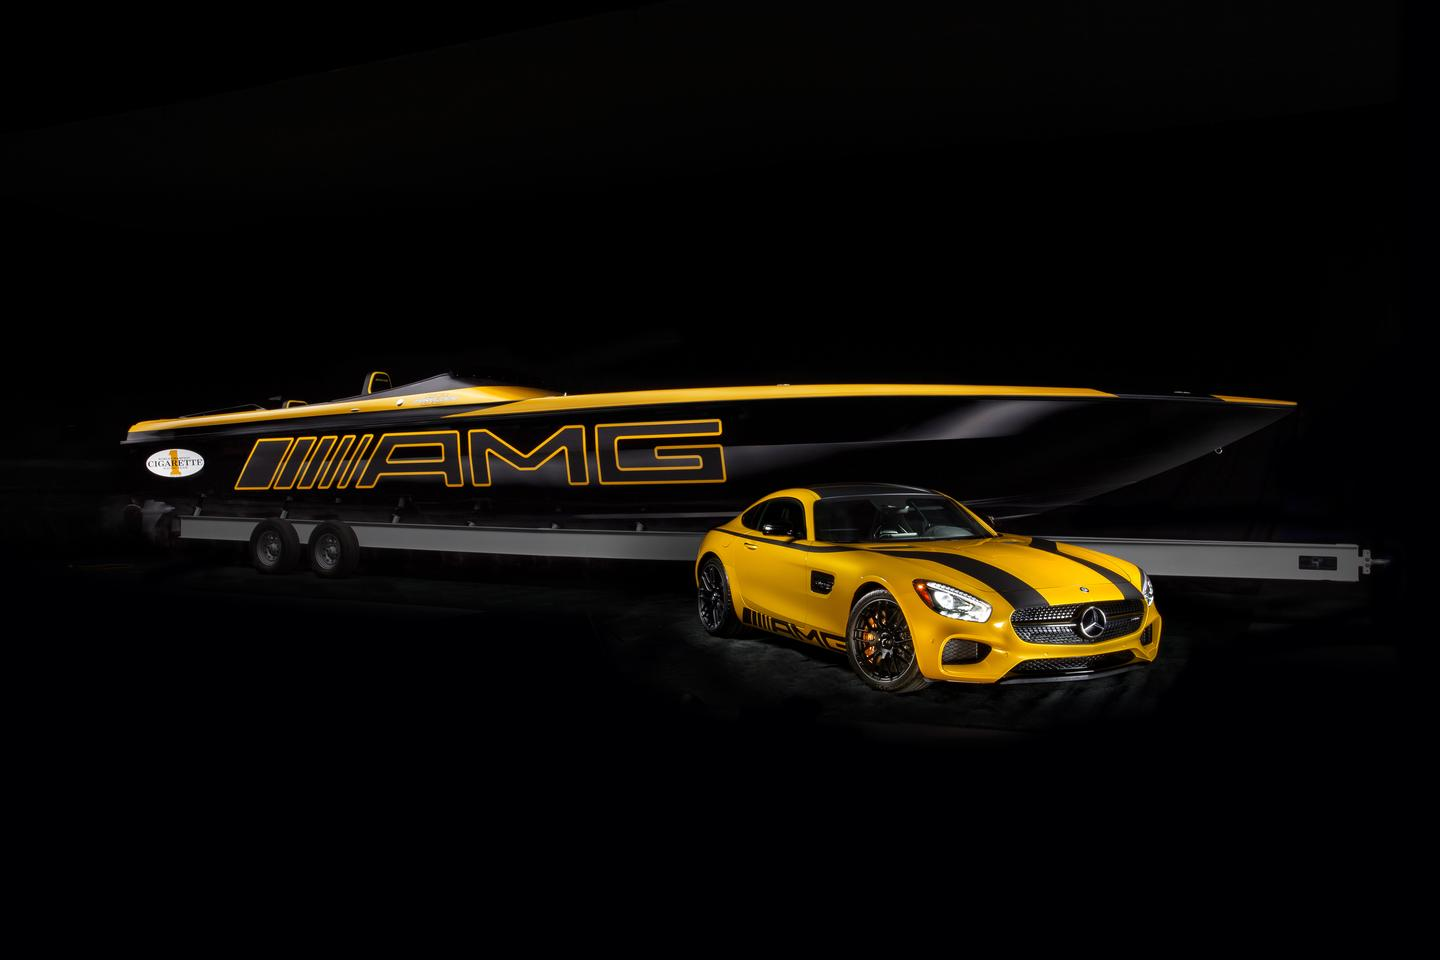 Mercedes and Cigarette present the 50 Marauder GT S and a specially painted GT S car to match